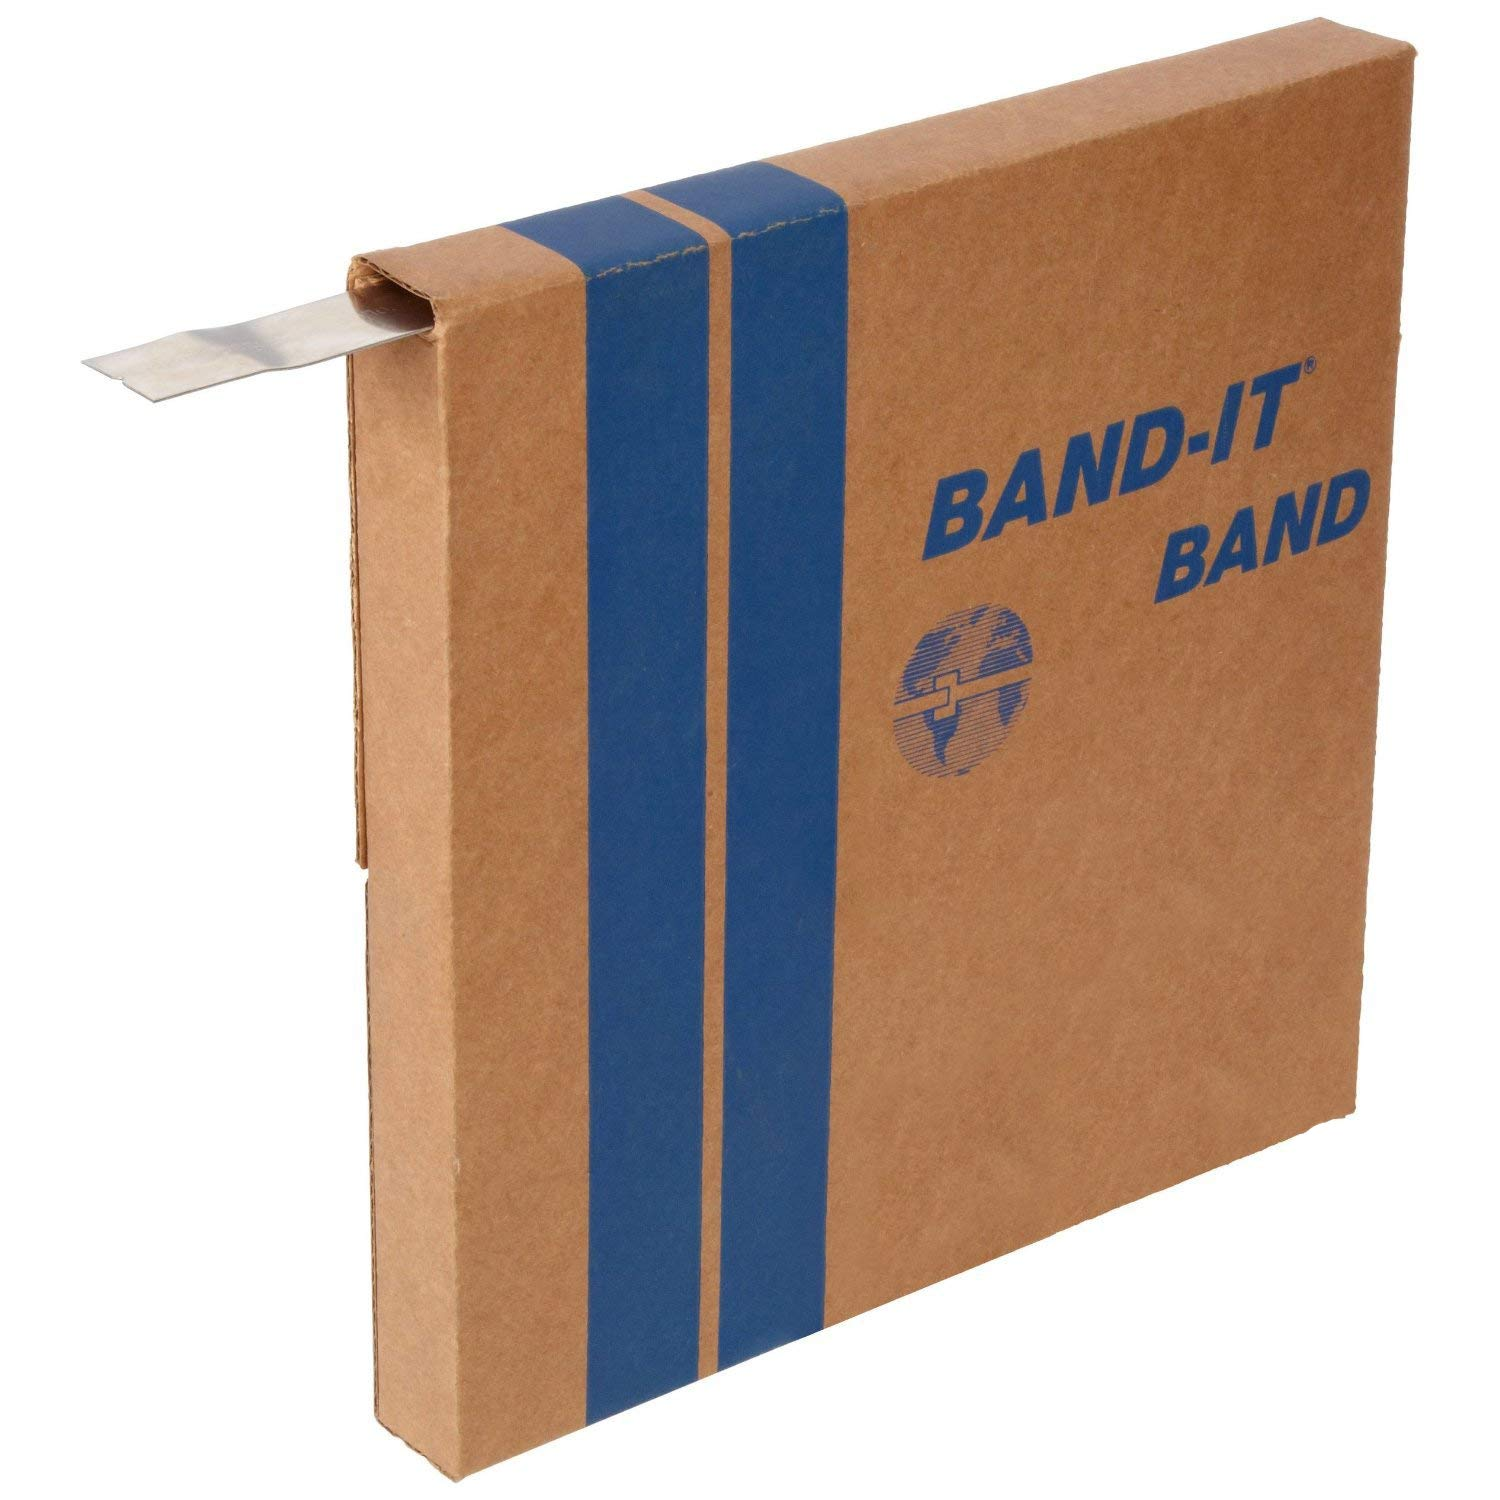 0.38 ID Stainless Steel 3//8 0.38 ID 3//8 Campbell Fittings C203 Band-It Band 201